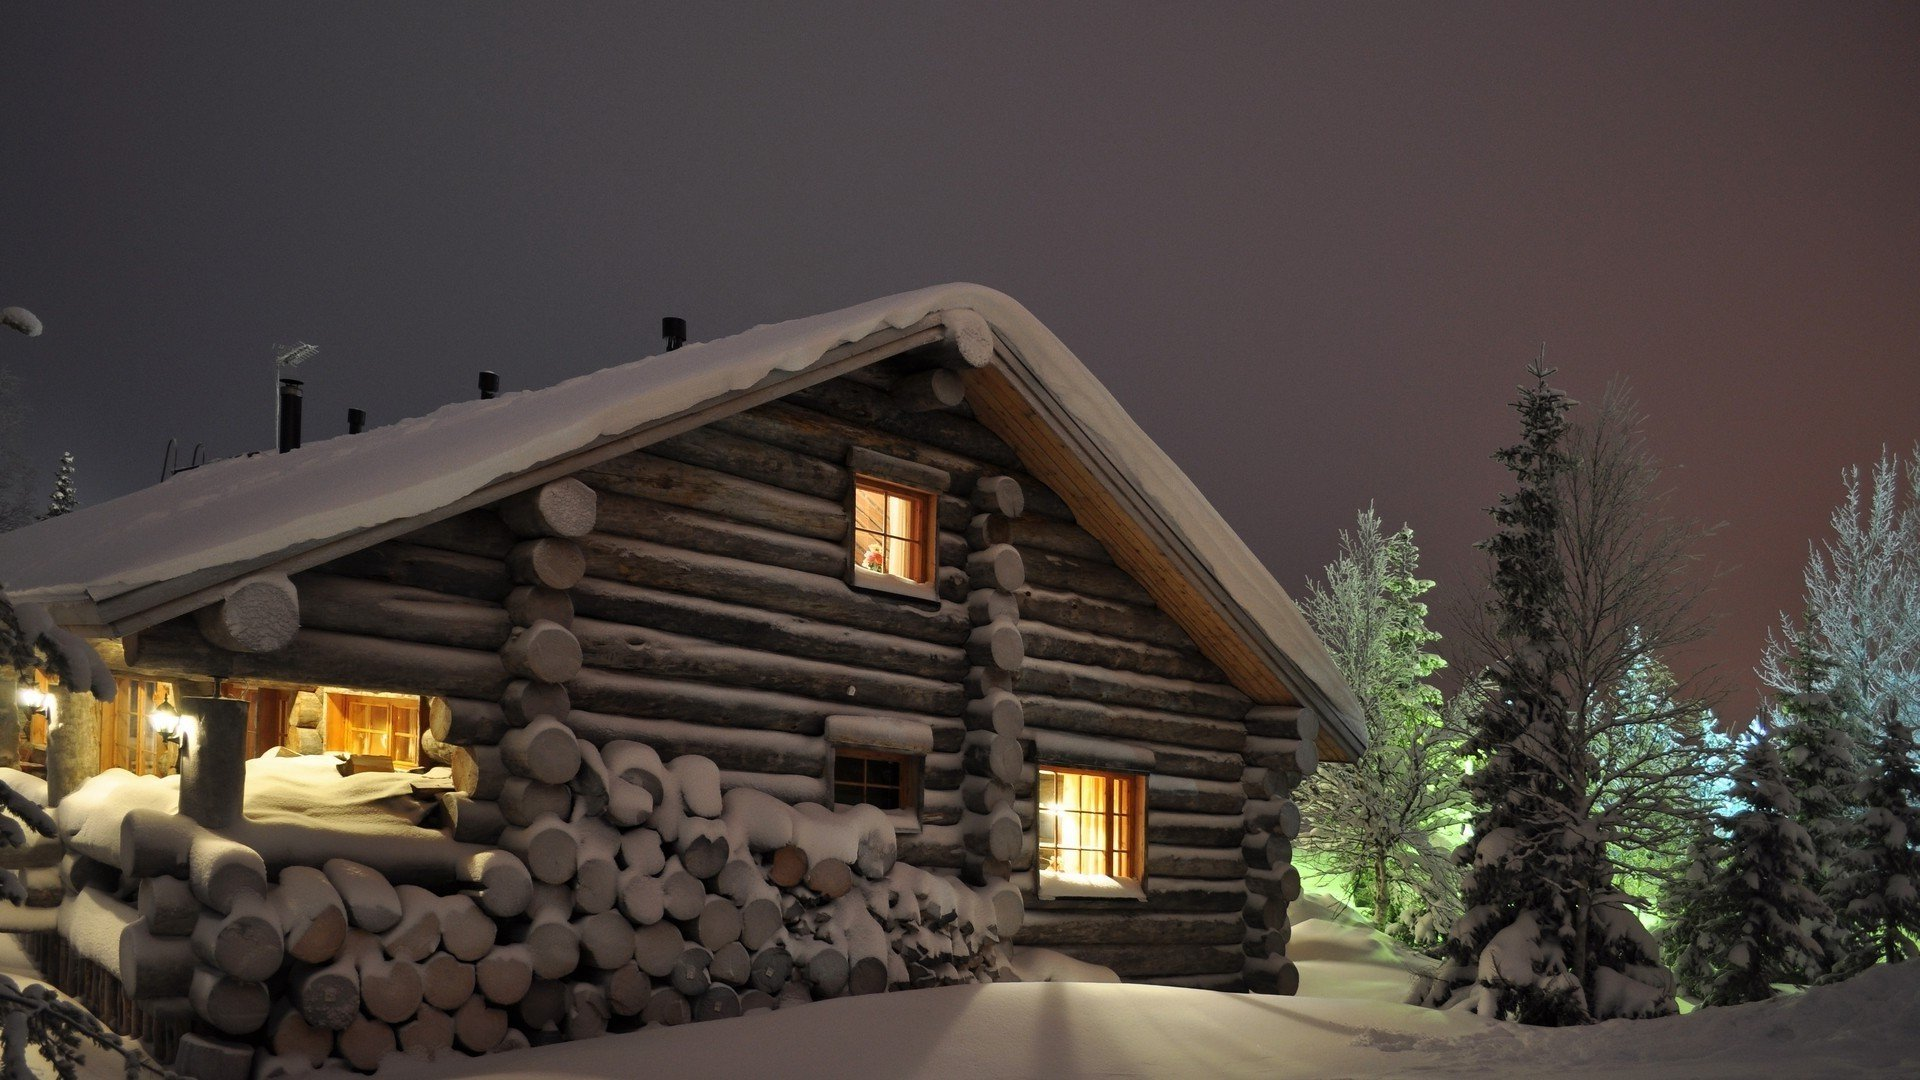 Log Cabin In Snow Wallpaper Wallpapersafari